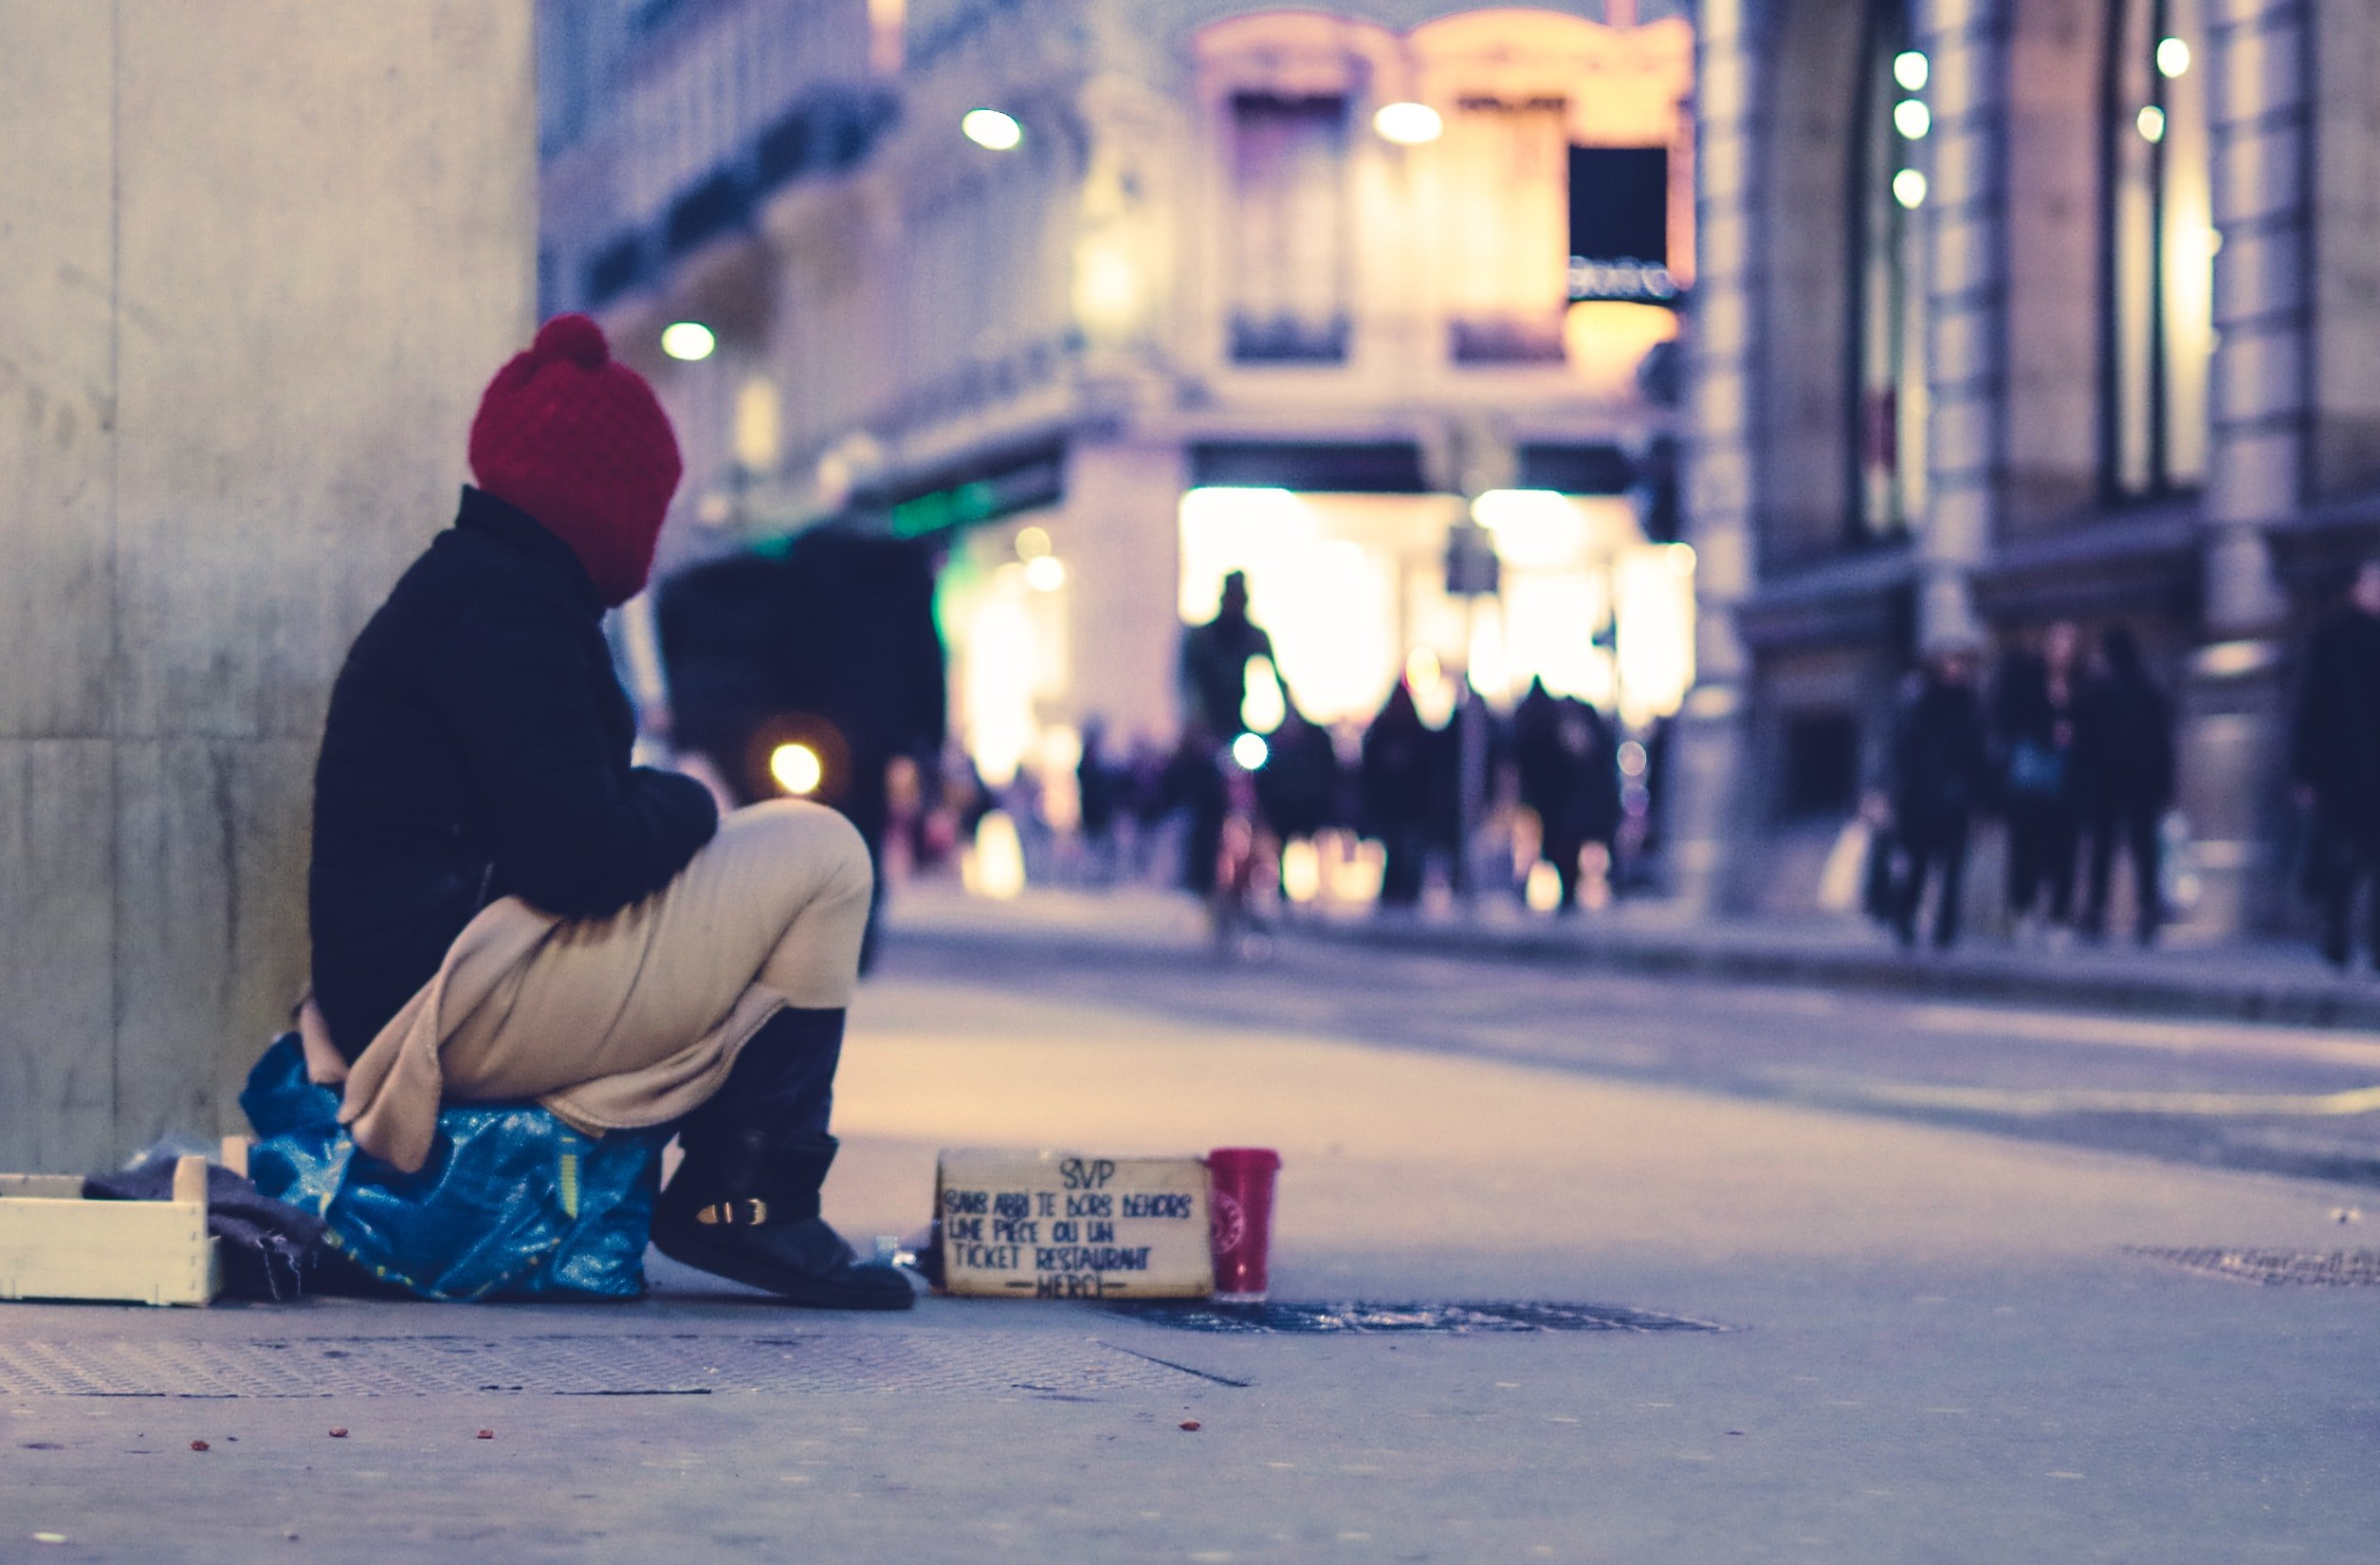 63% Think Homeless Should Be Rehoused Post Lockdown | eOpinion